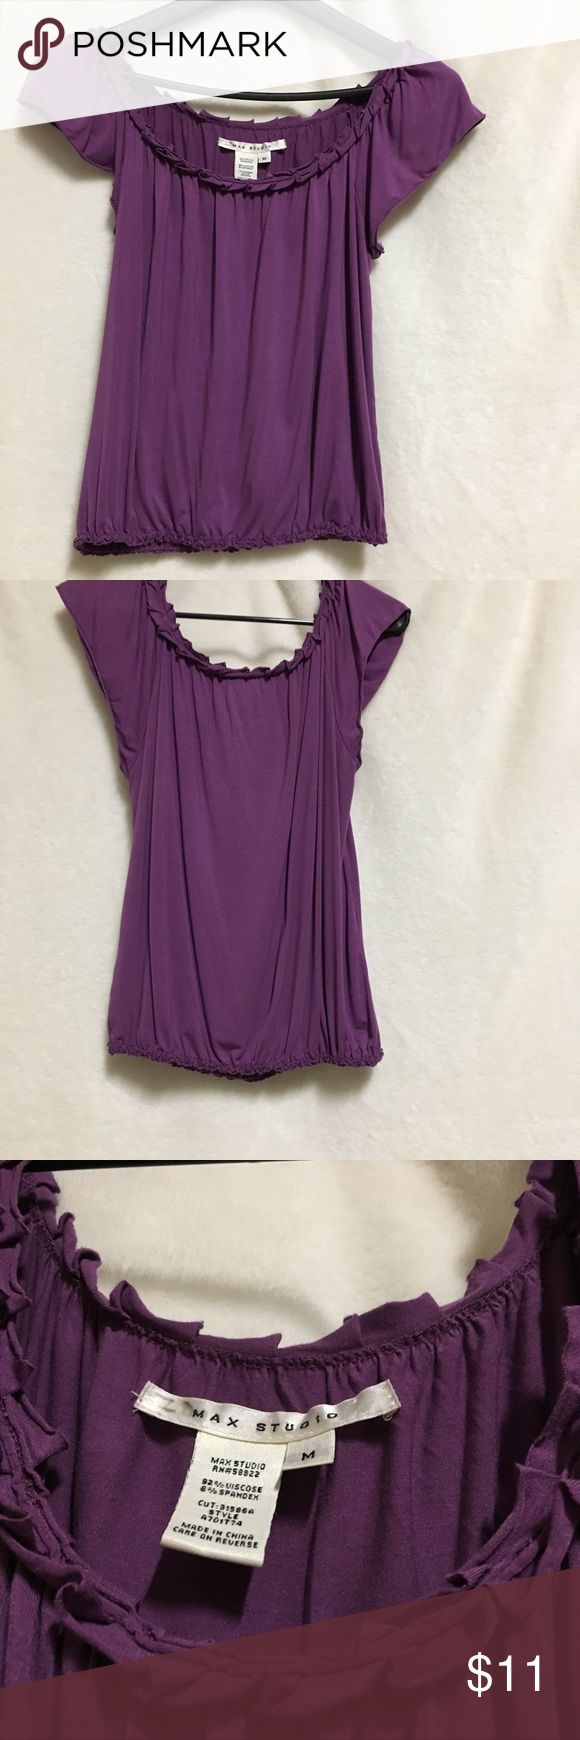 Max Studio Women's Blouse Size Medium Purple Size Medium Blouse  There is a marker stain on the size label but otherwise blouse is in good condition  Purple color Max Studio Tops Blouses